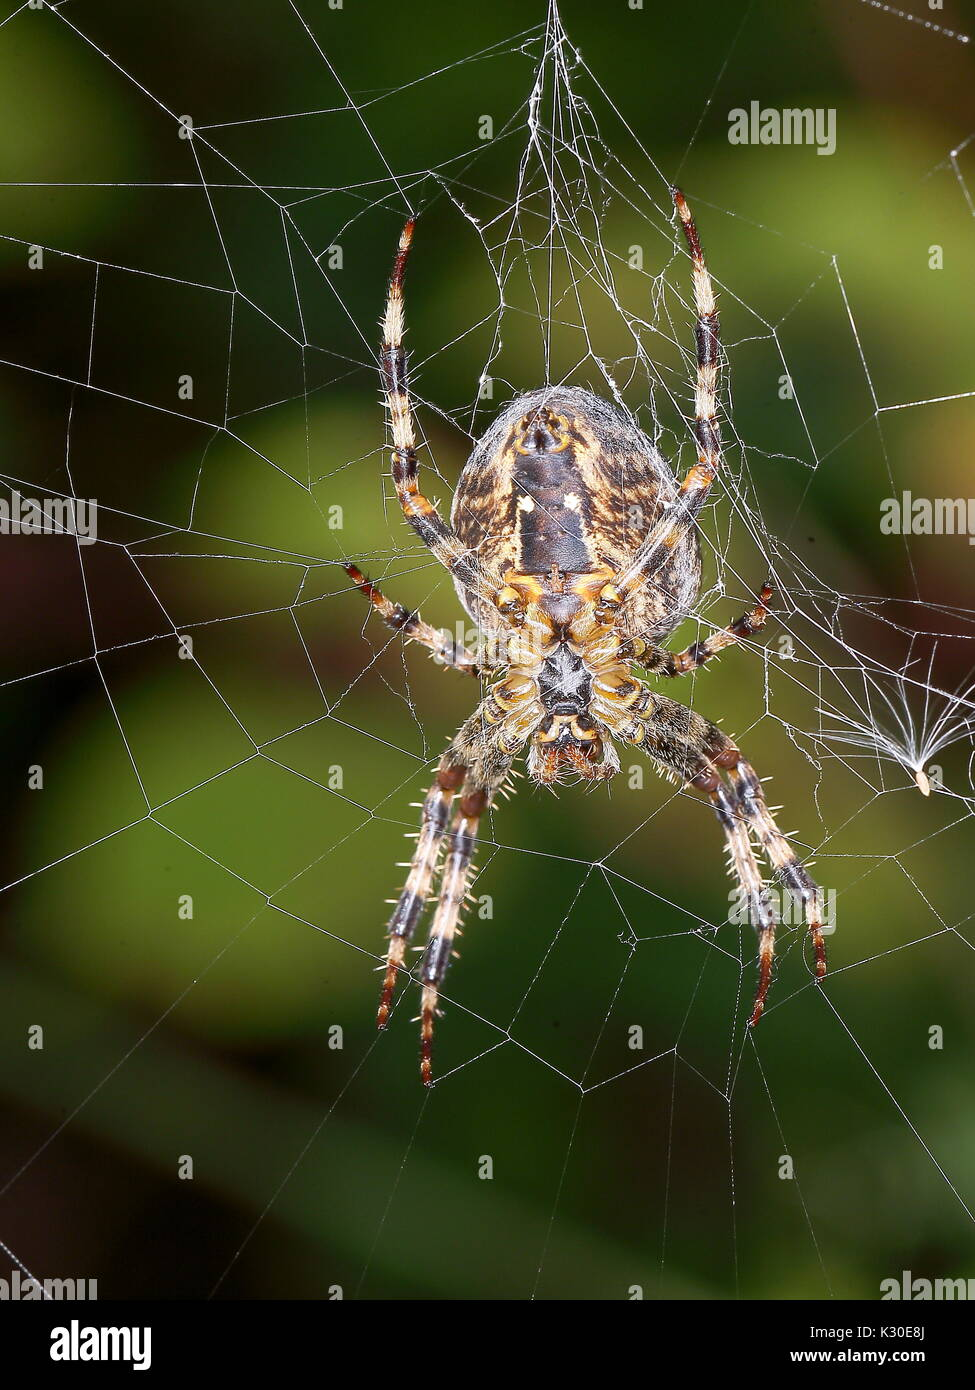 Large Spider on web - Stock Image